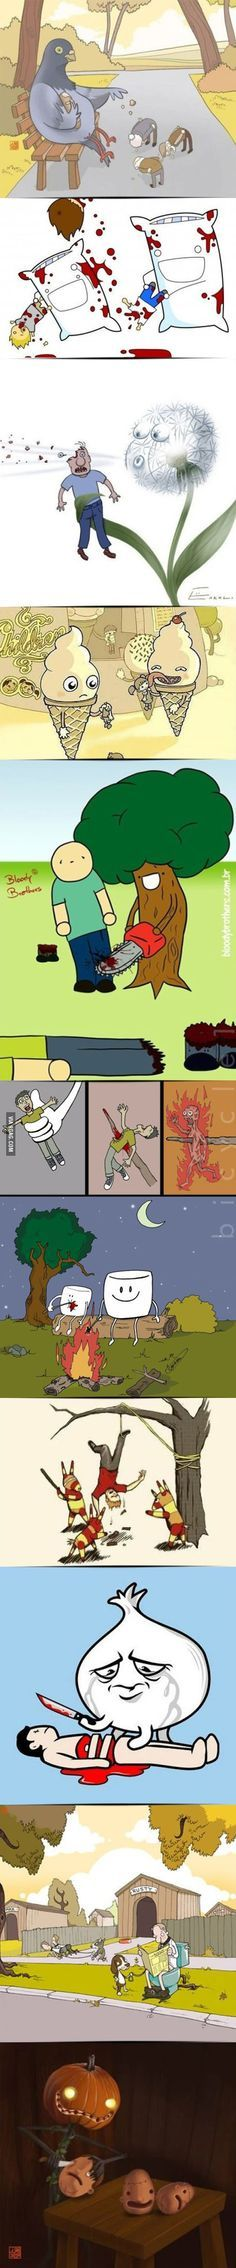 9GAG - In a parallel universe...